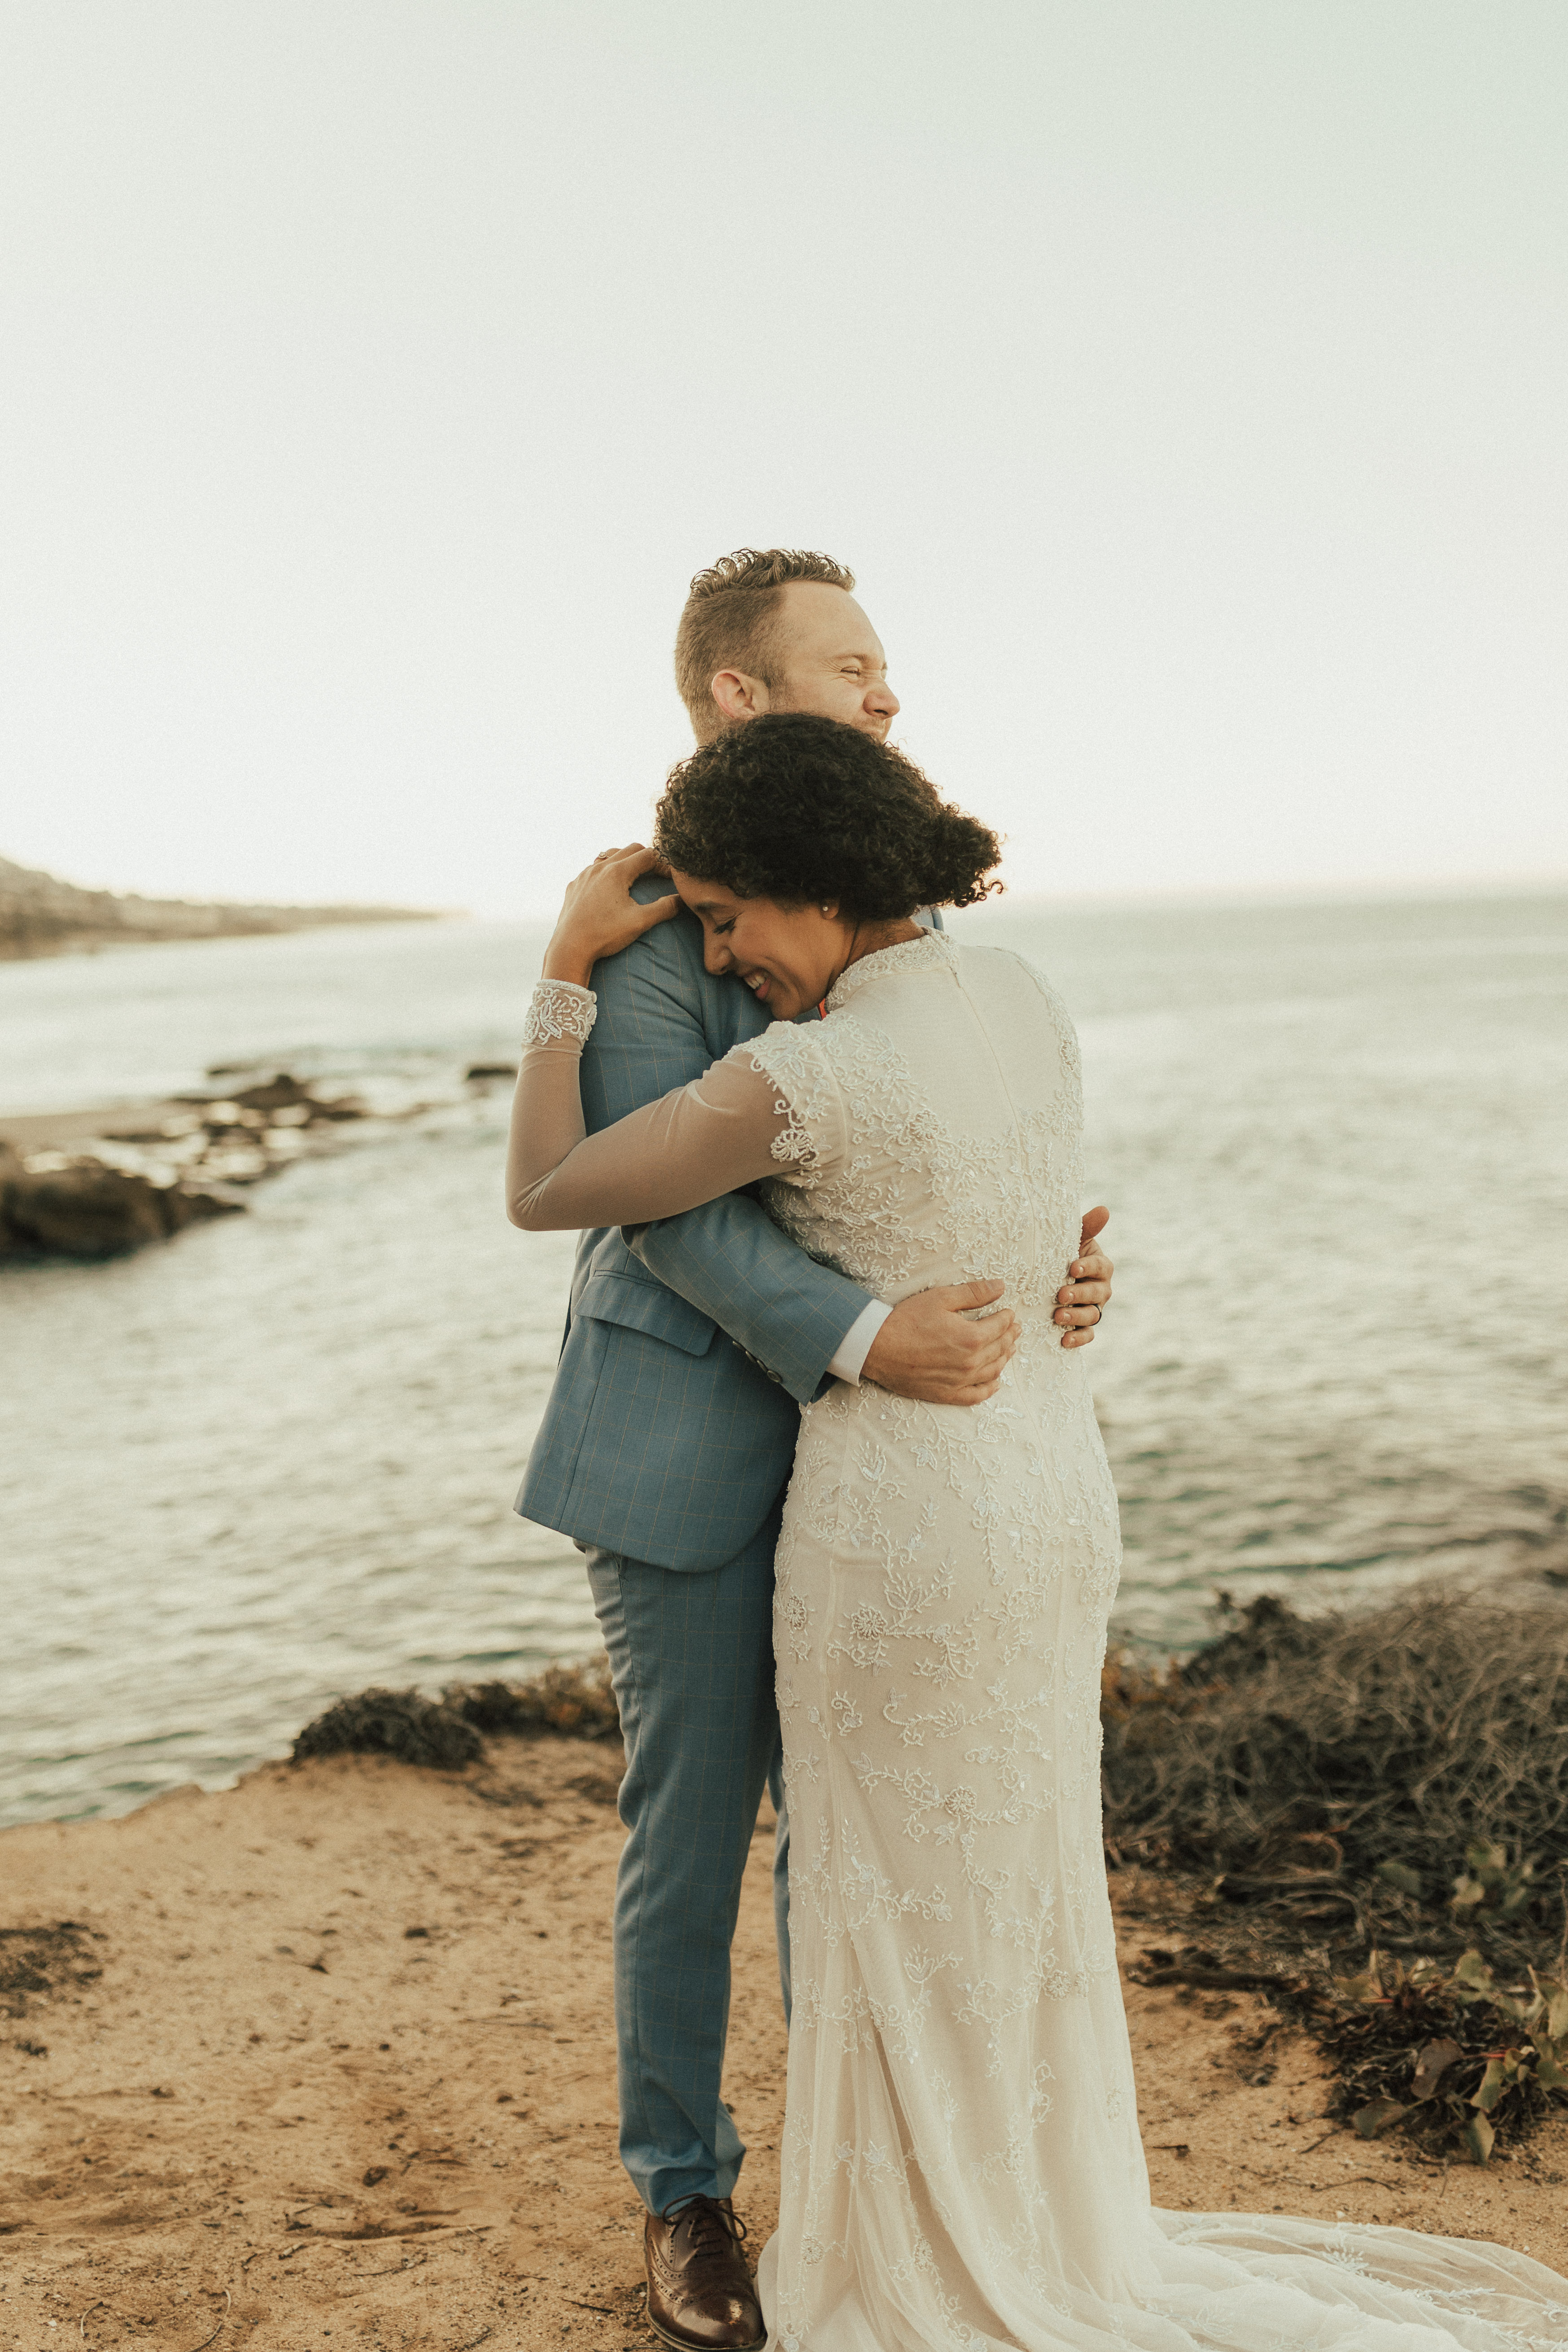 wedding photos at remote california beach with bridal gown